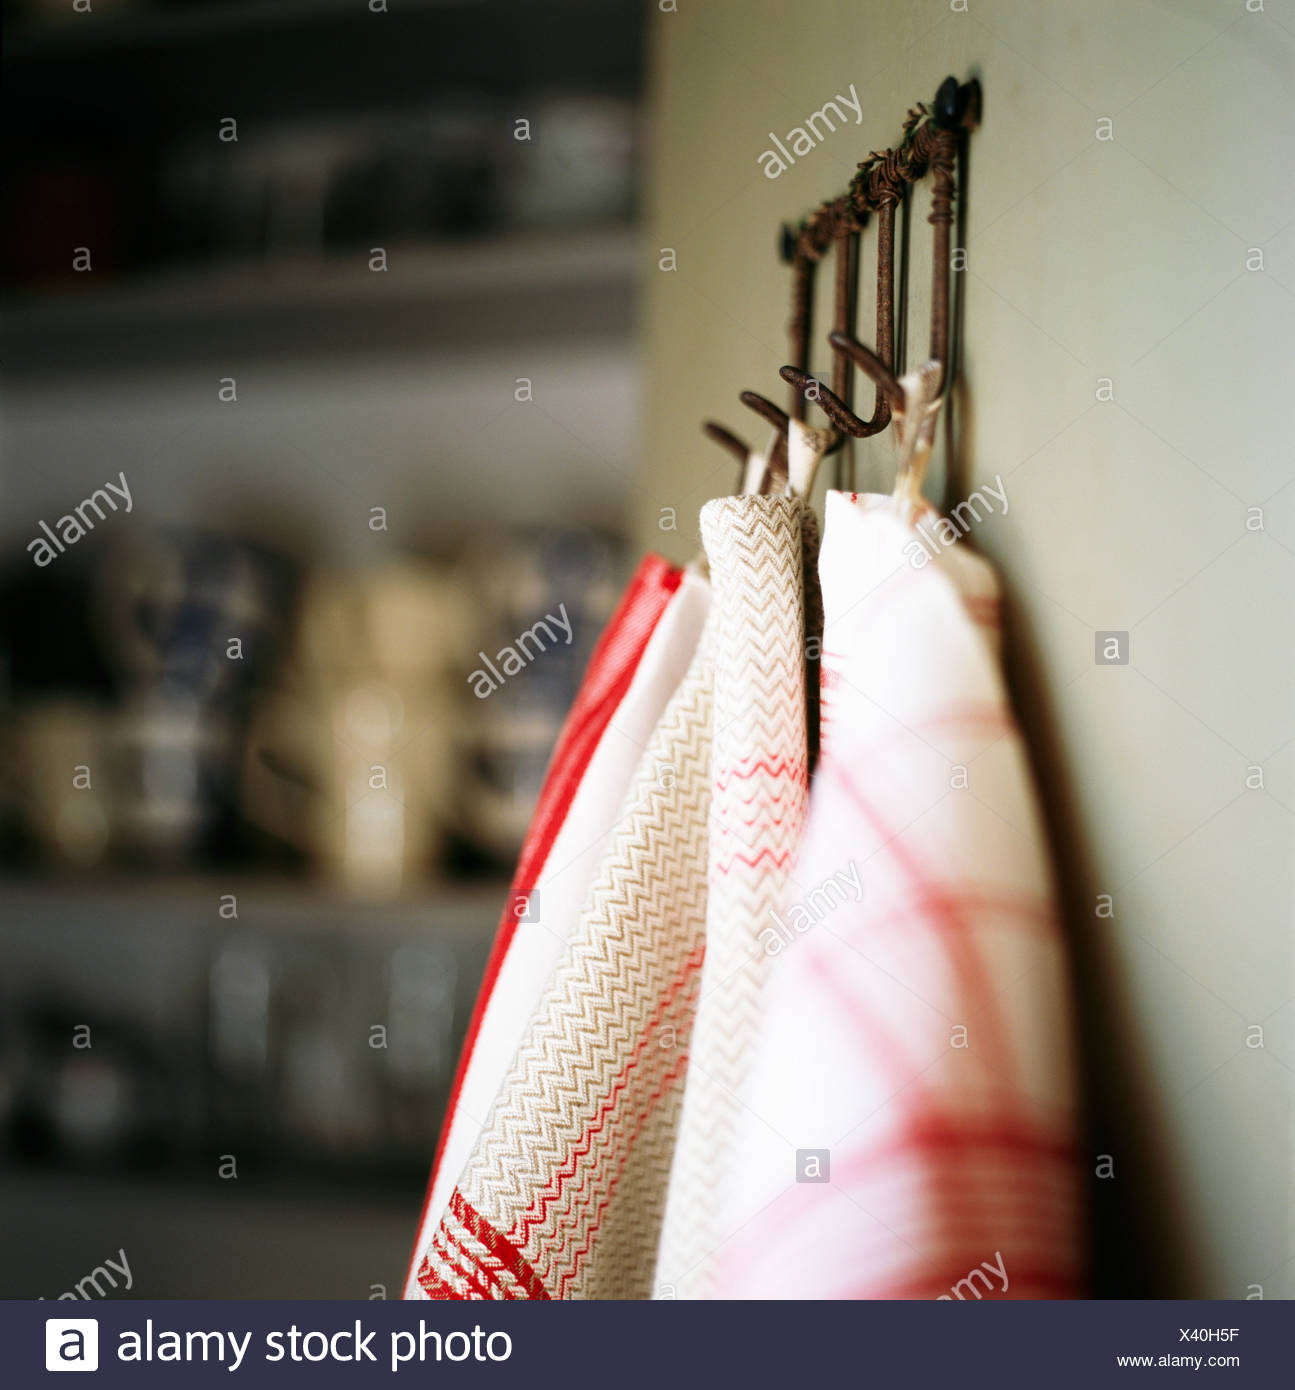 Kitchen towels in a kitchen. - Stock Image